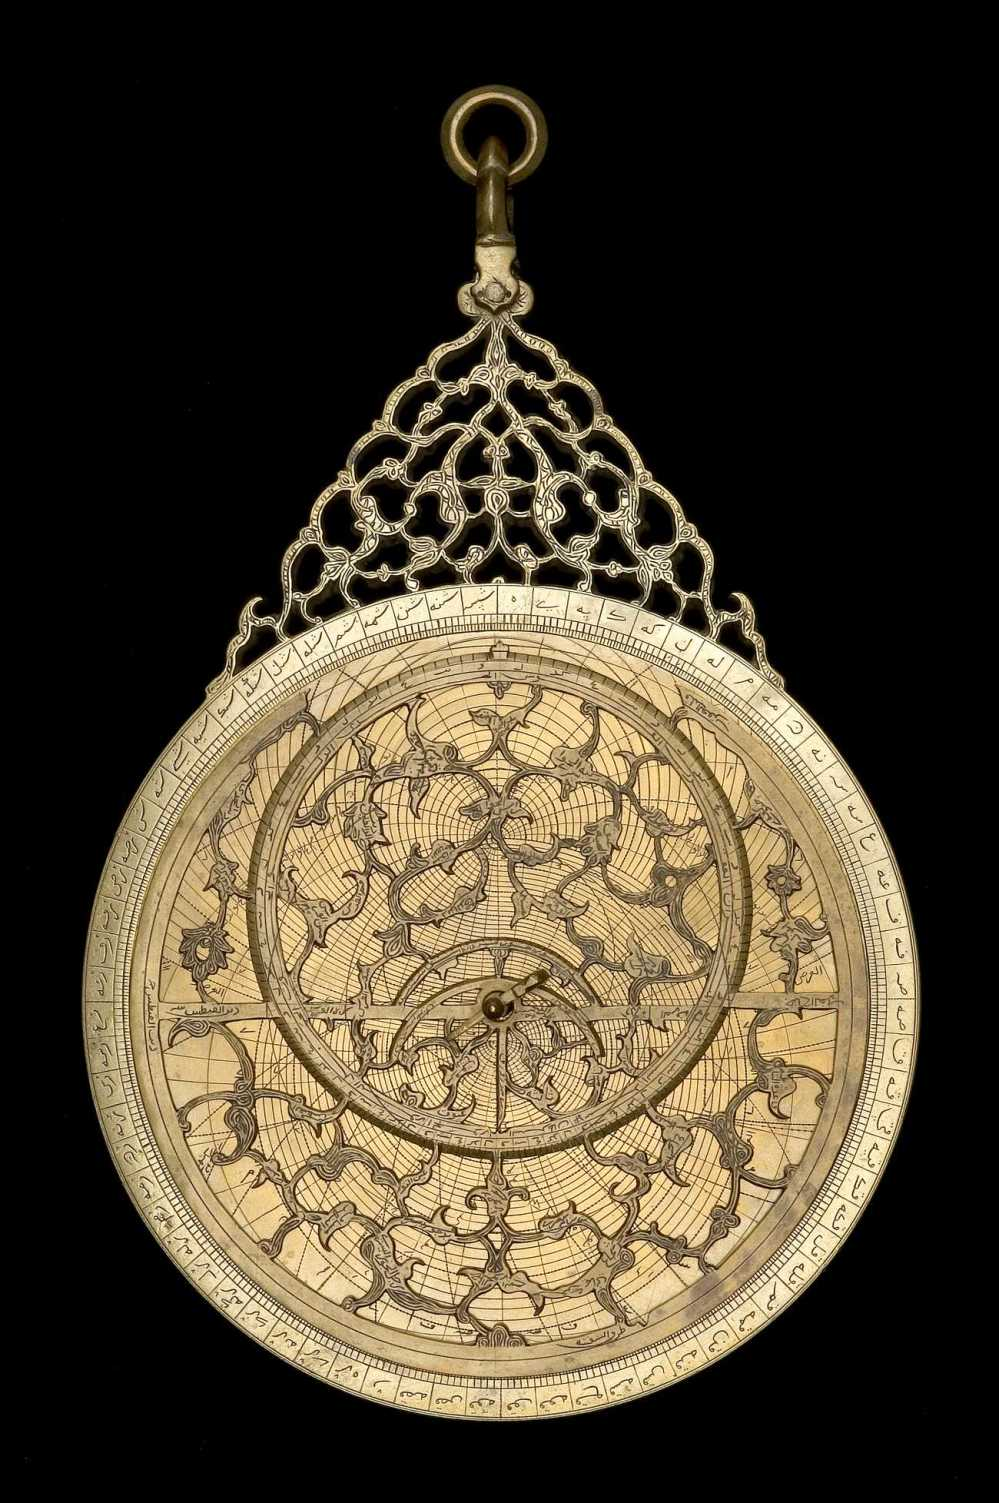 preview image for Astrolabe, by Qa'im Muhammad, Lahore, 1634/5